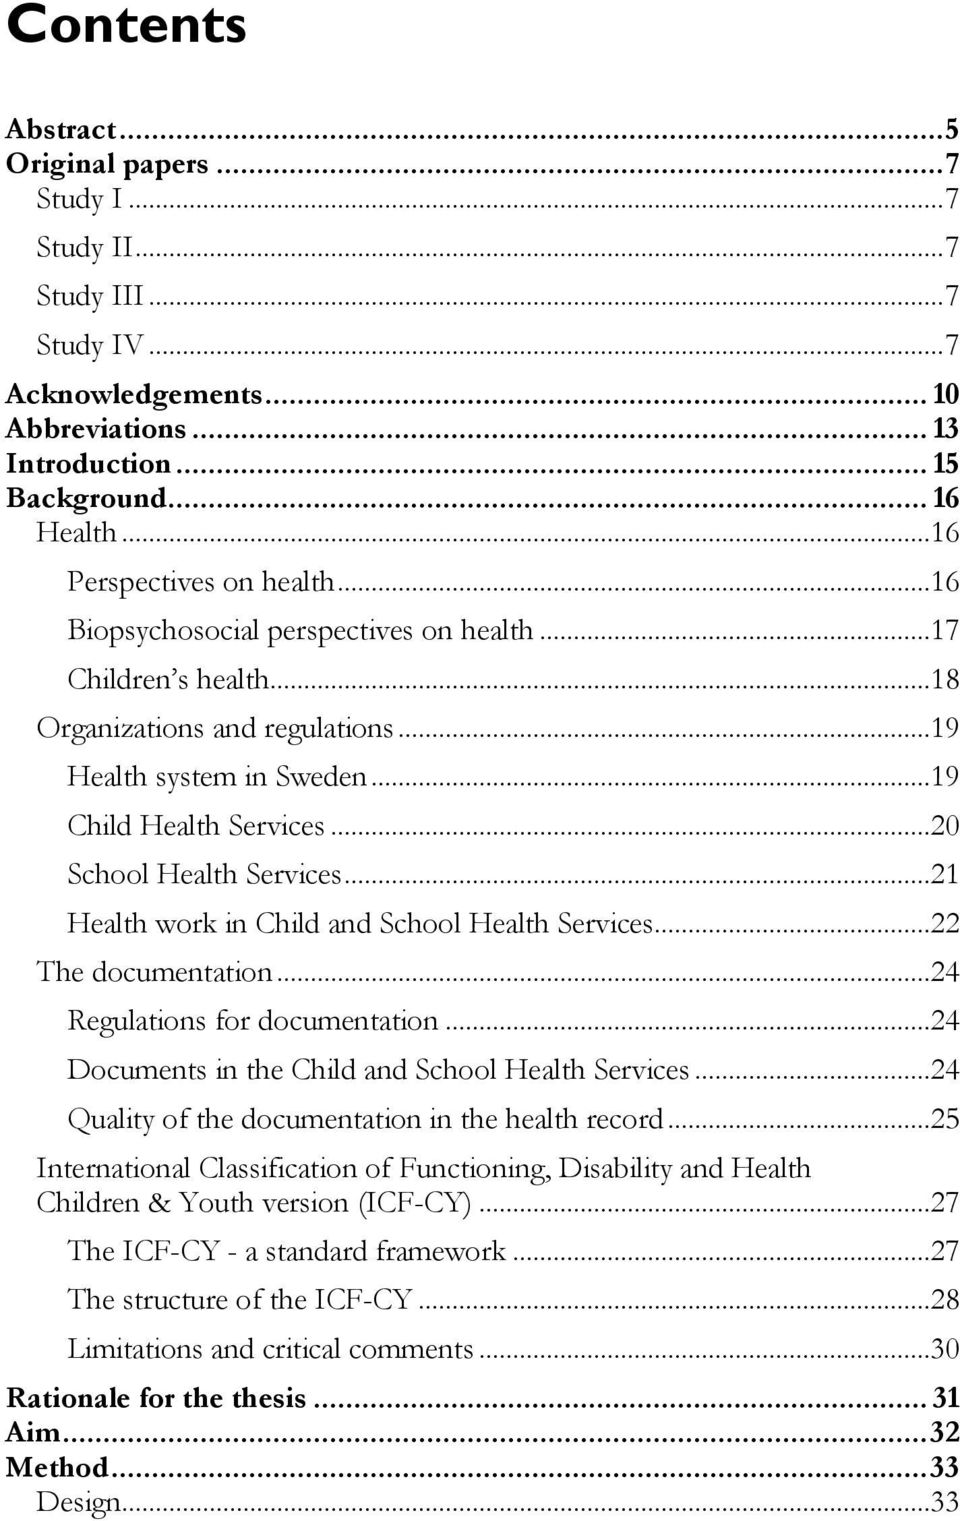 ..20 School Health Services...21 Health work in Child and School Health Services...22 The documentation...24 Regulations for documentation...24 Documents in the Child and School Health Services.